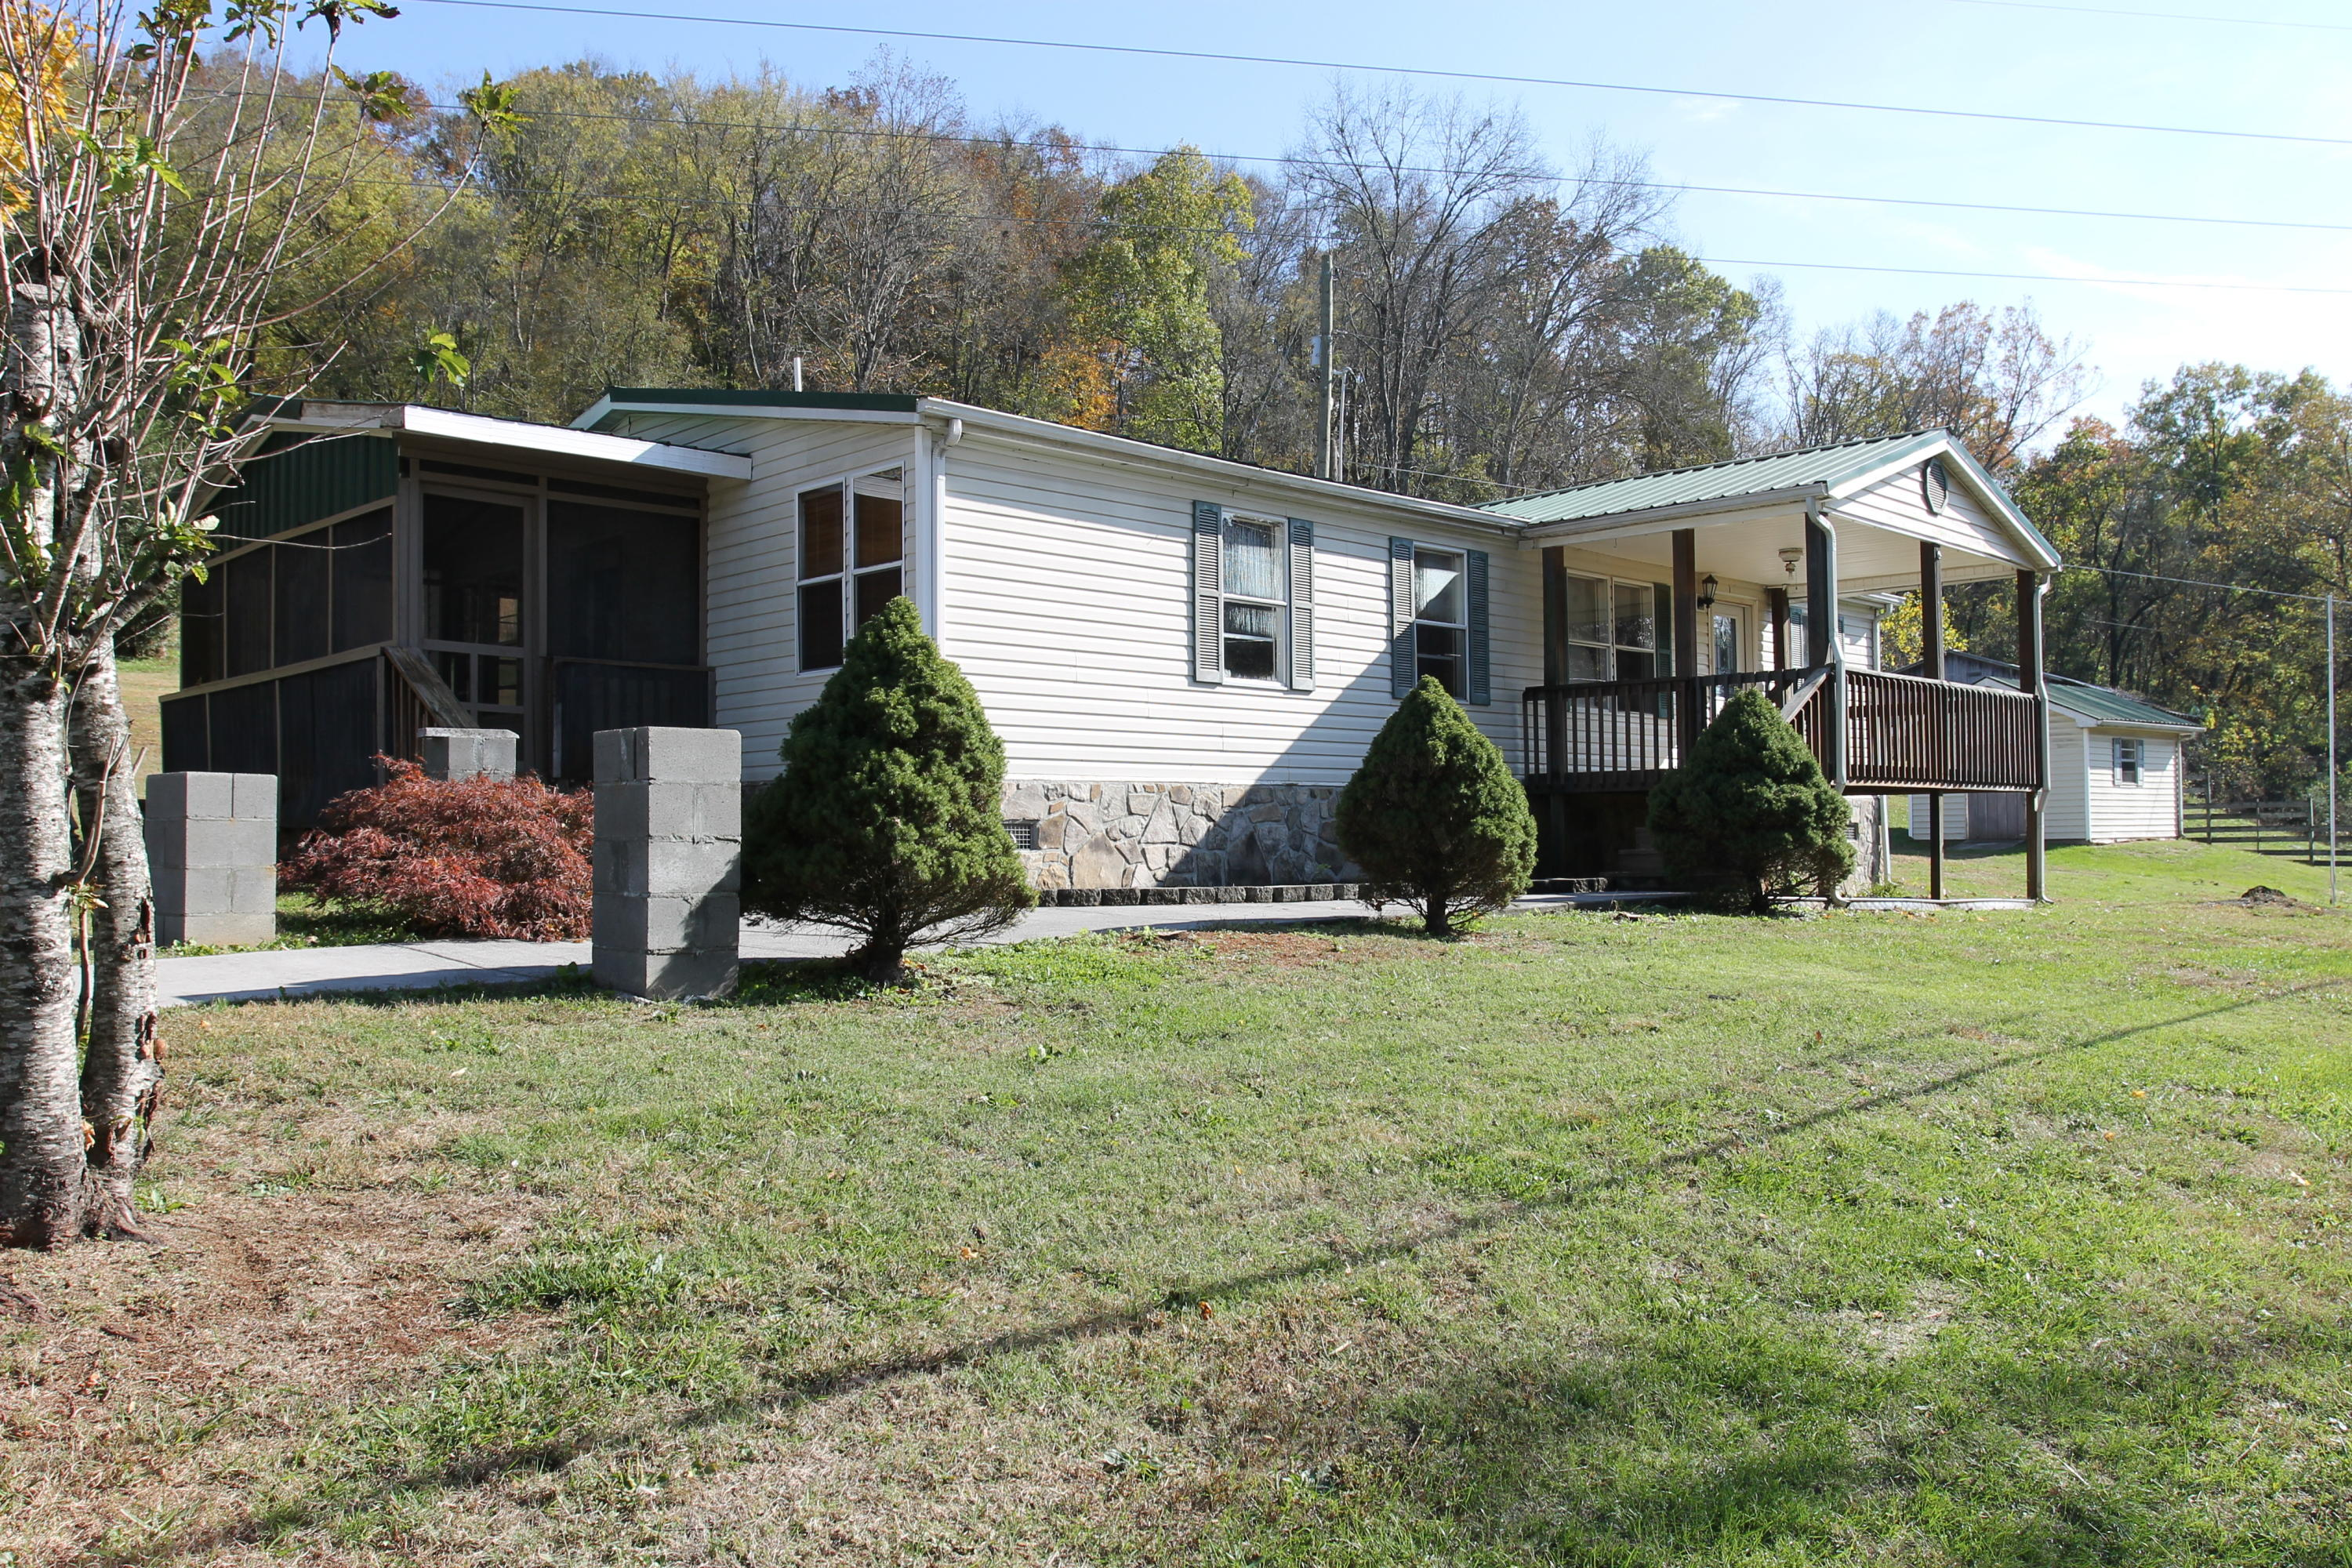 1702 Governor John Sevier Hwy, Knoxville, Tennessee 37920, 3 Bedrooms Bedrooms, ,2 BathroomsBathrooms,Single Family,For Sale,Governor John Sevier,1100270